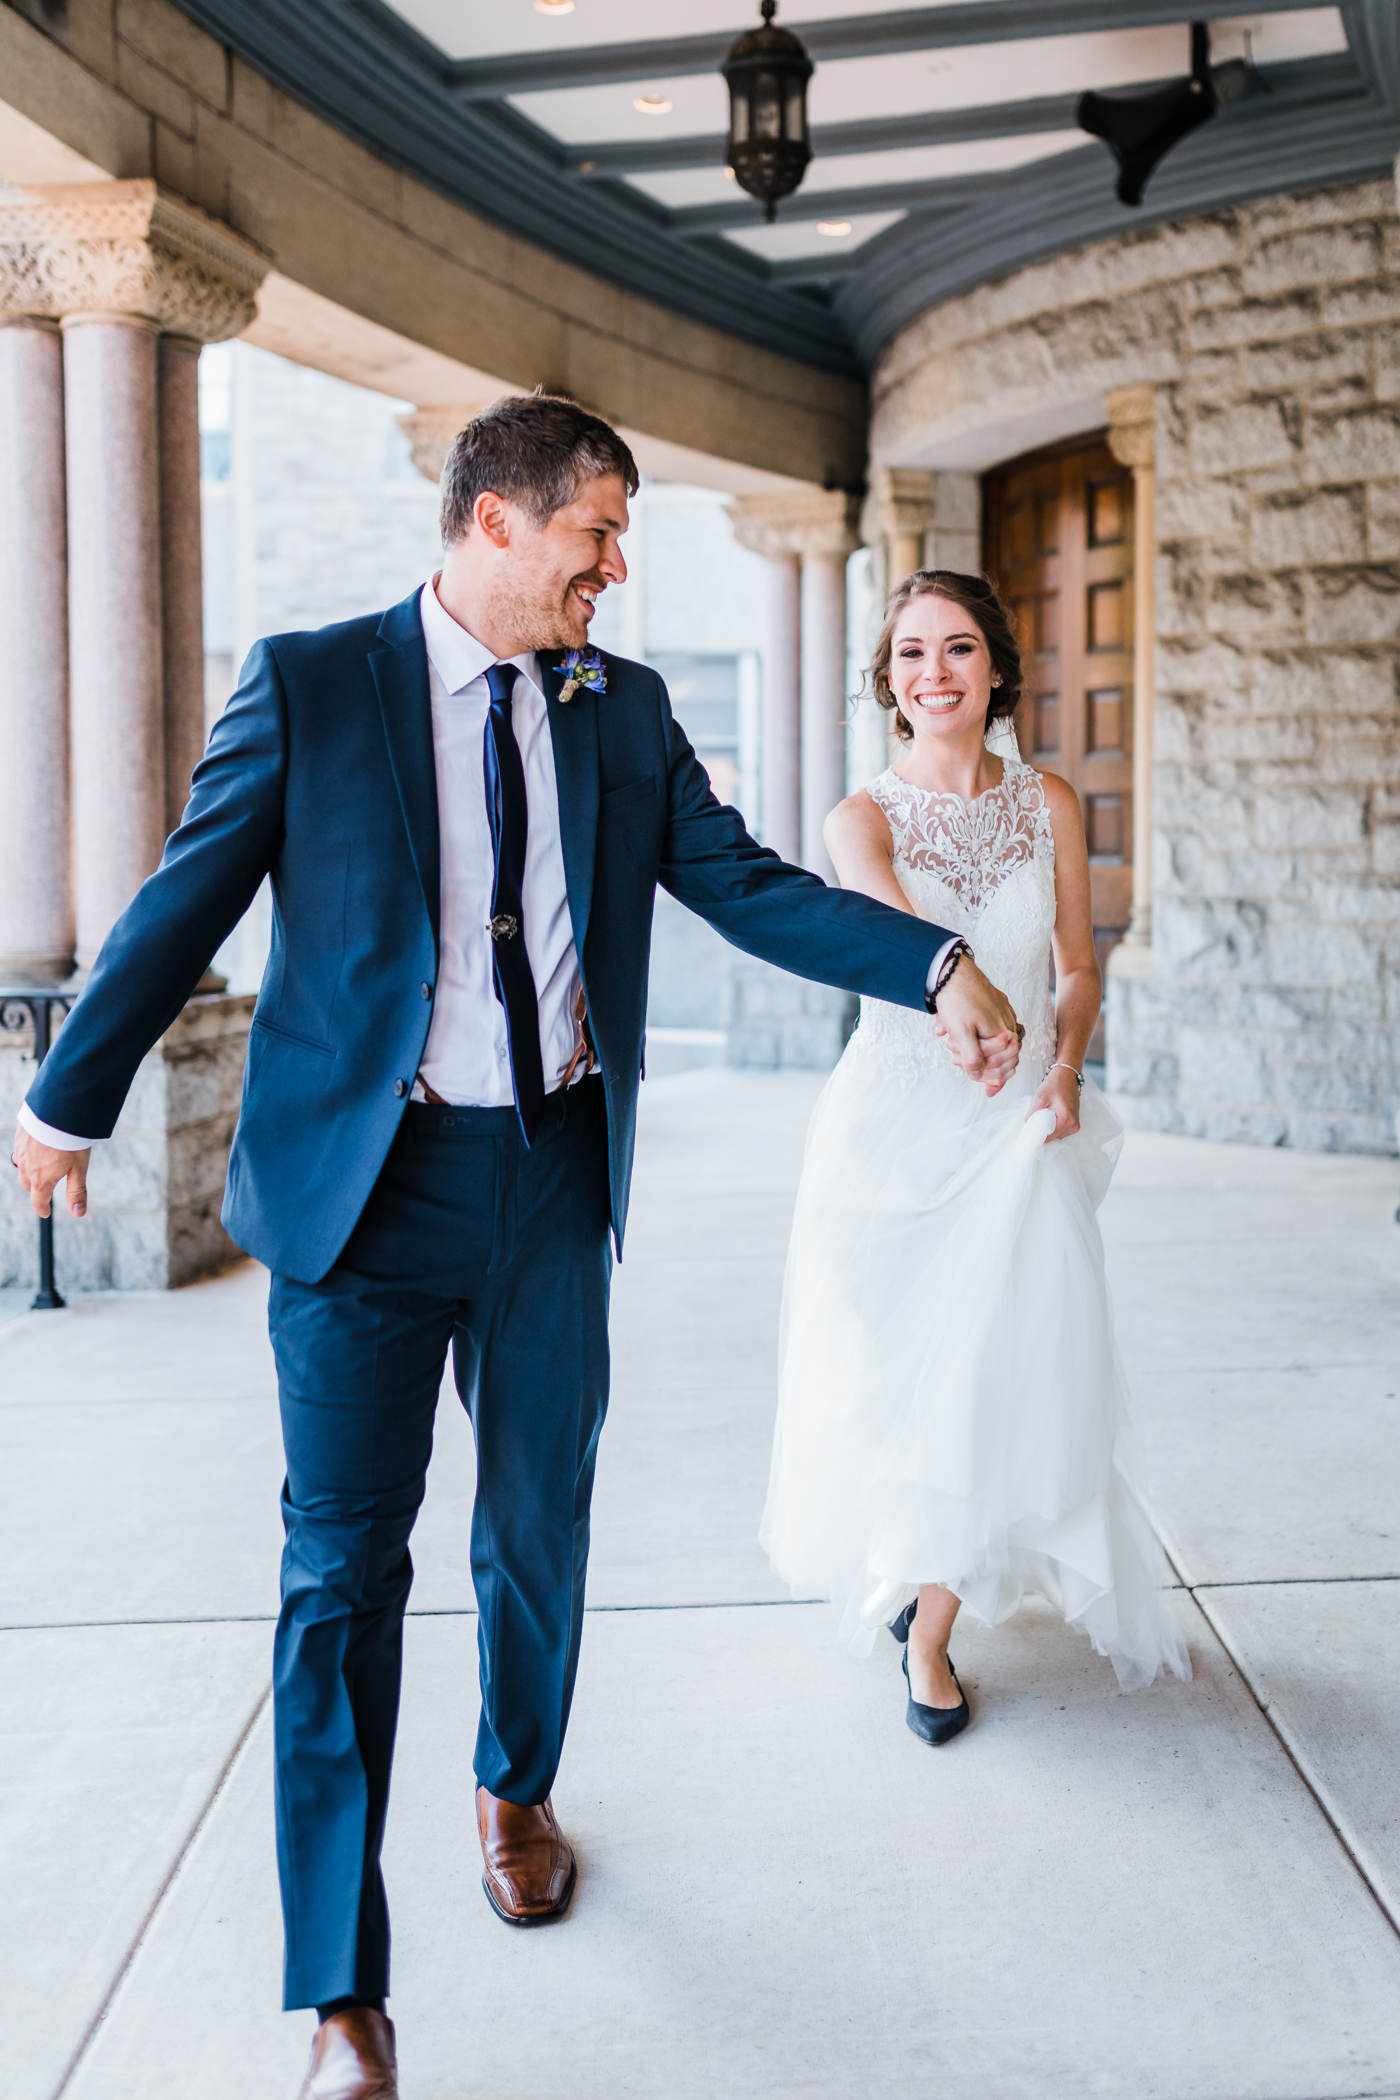 bride and groom having fun on their wedding day - husband and wife photography and videography team in maryland